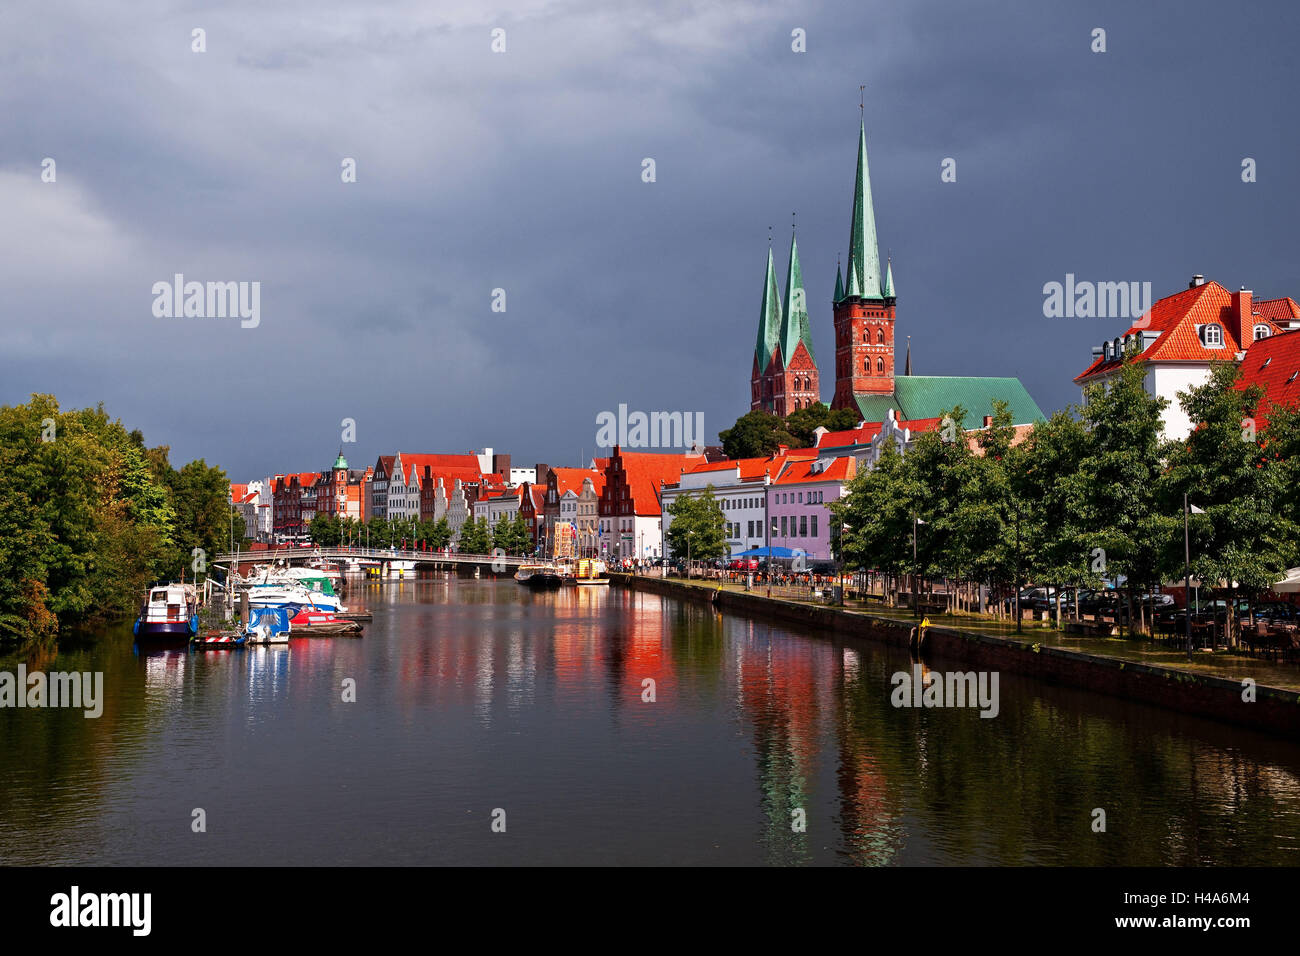 storm in front of in Lübecker Traveviertel, district, - Stock Image